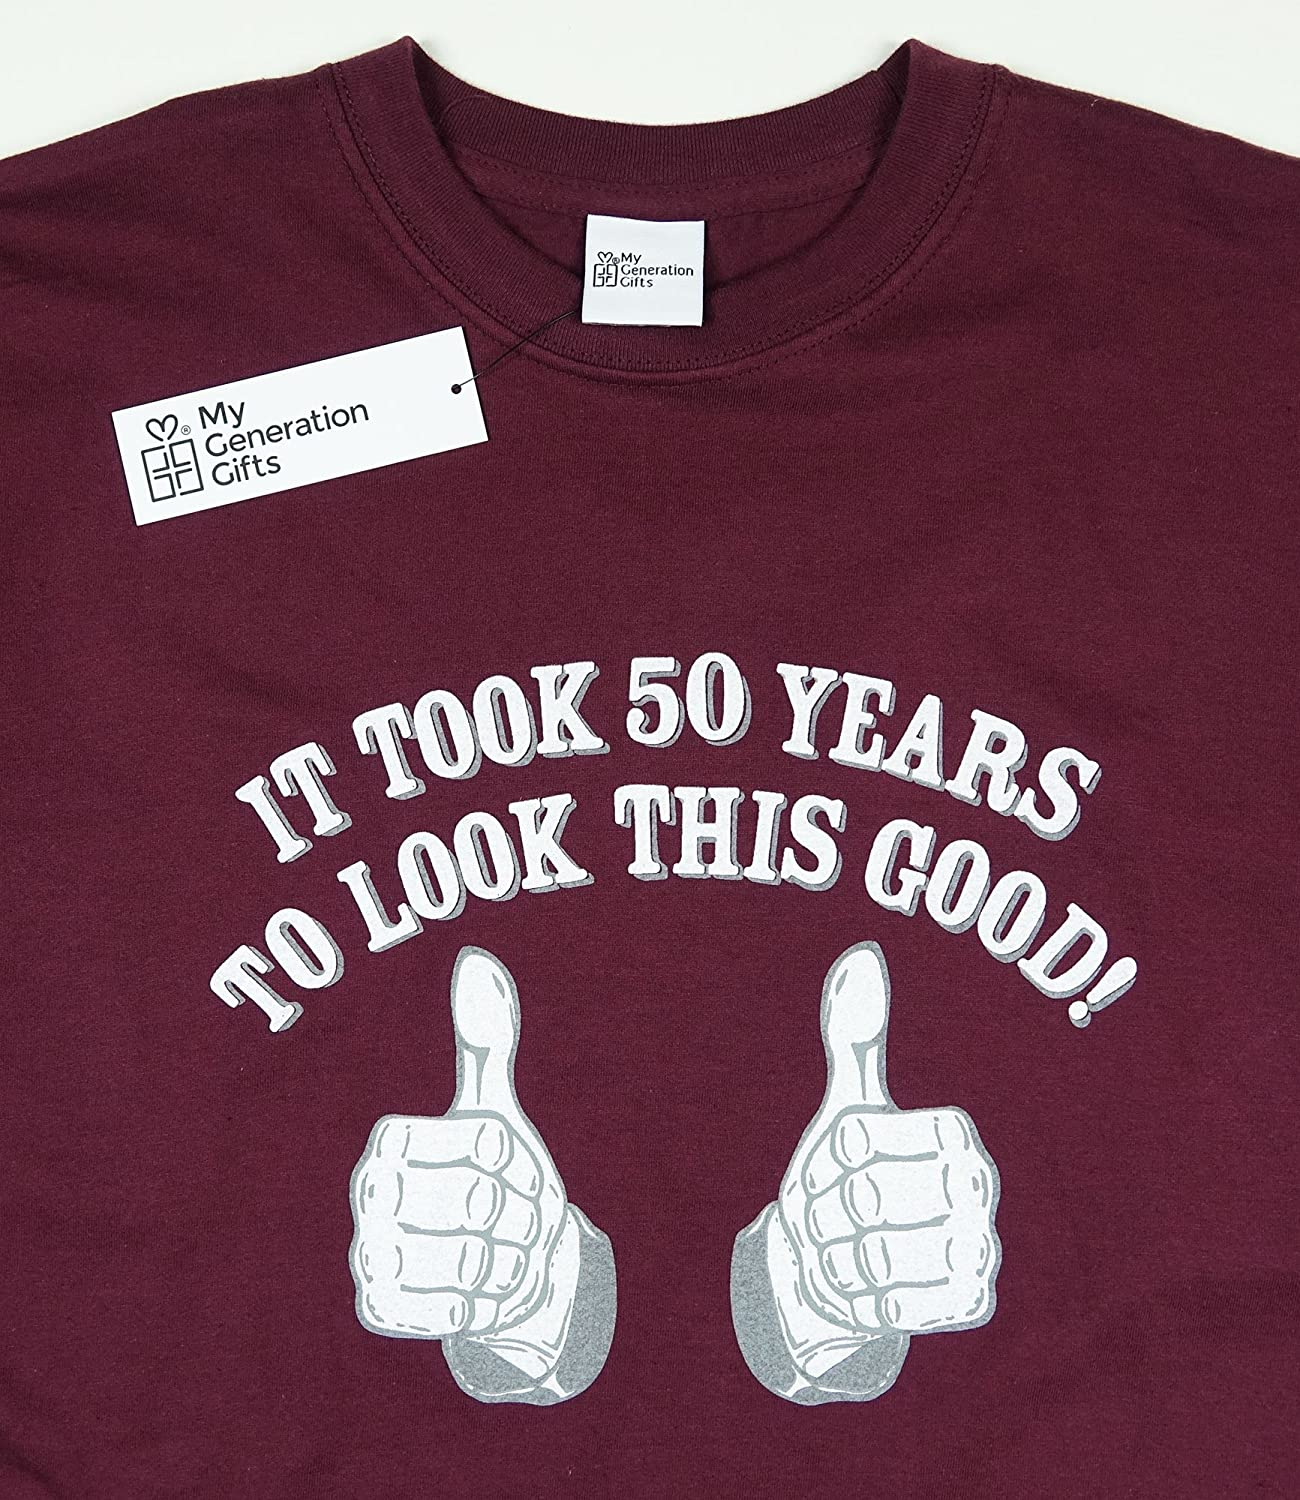 Amazon.com: My Generation Gifts It Took 50 Years To Look This Good! - 50th Birthday Gift/Present T-Shirt Mens: Clothing